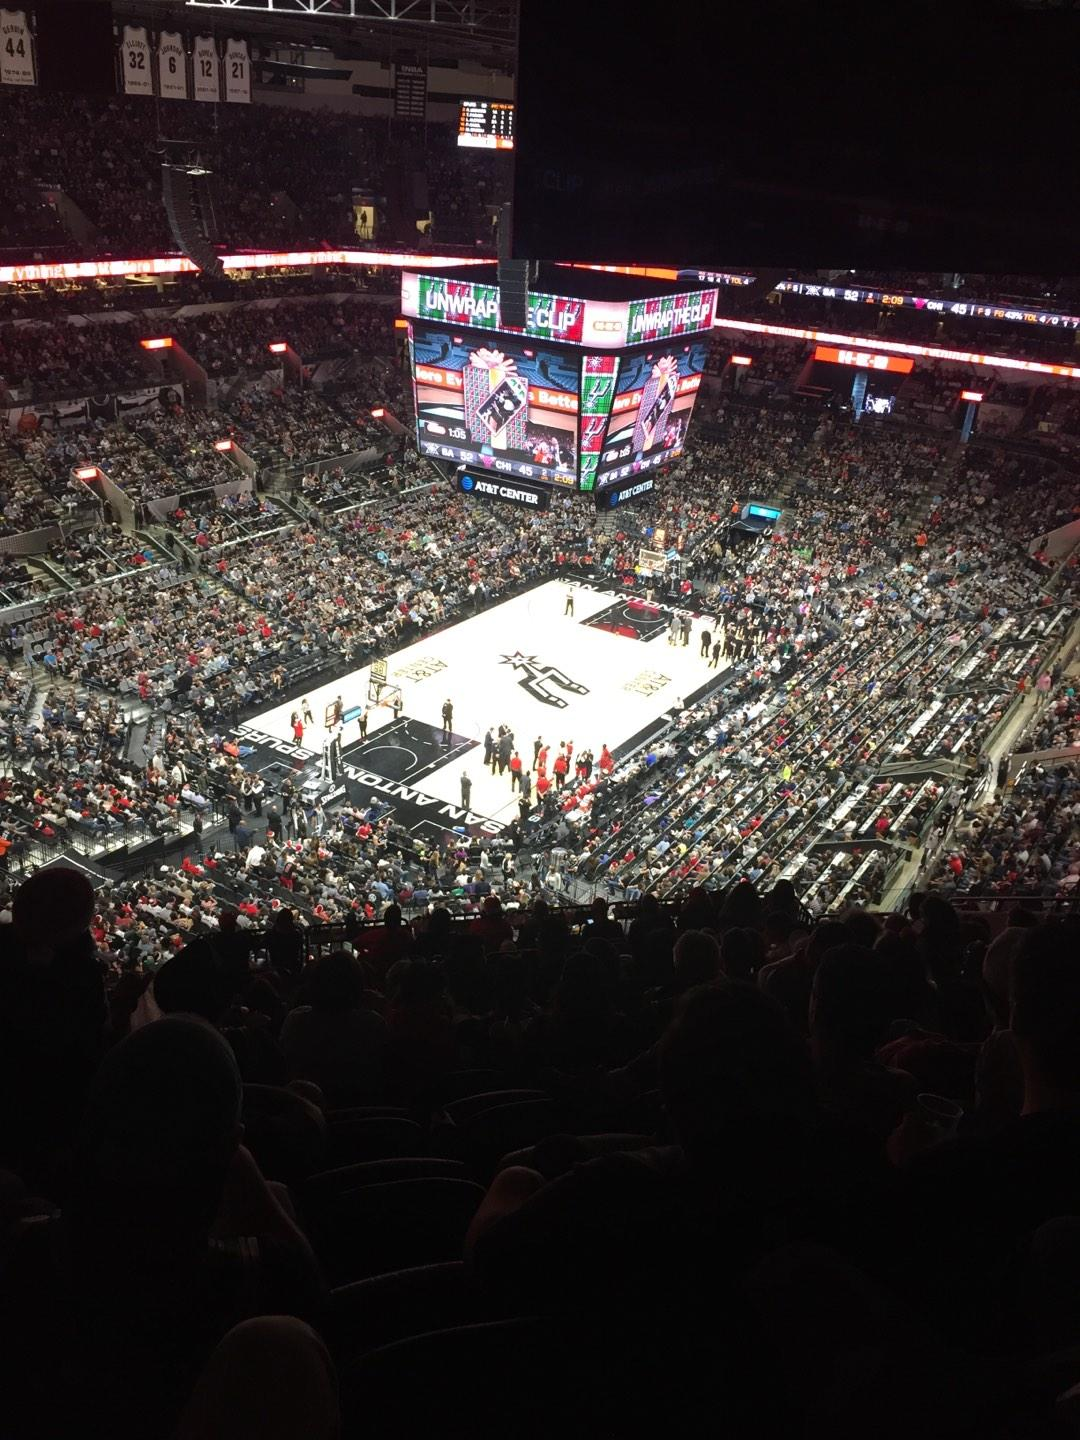 AT&T Center Section 213 Row 16 Seat 17